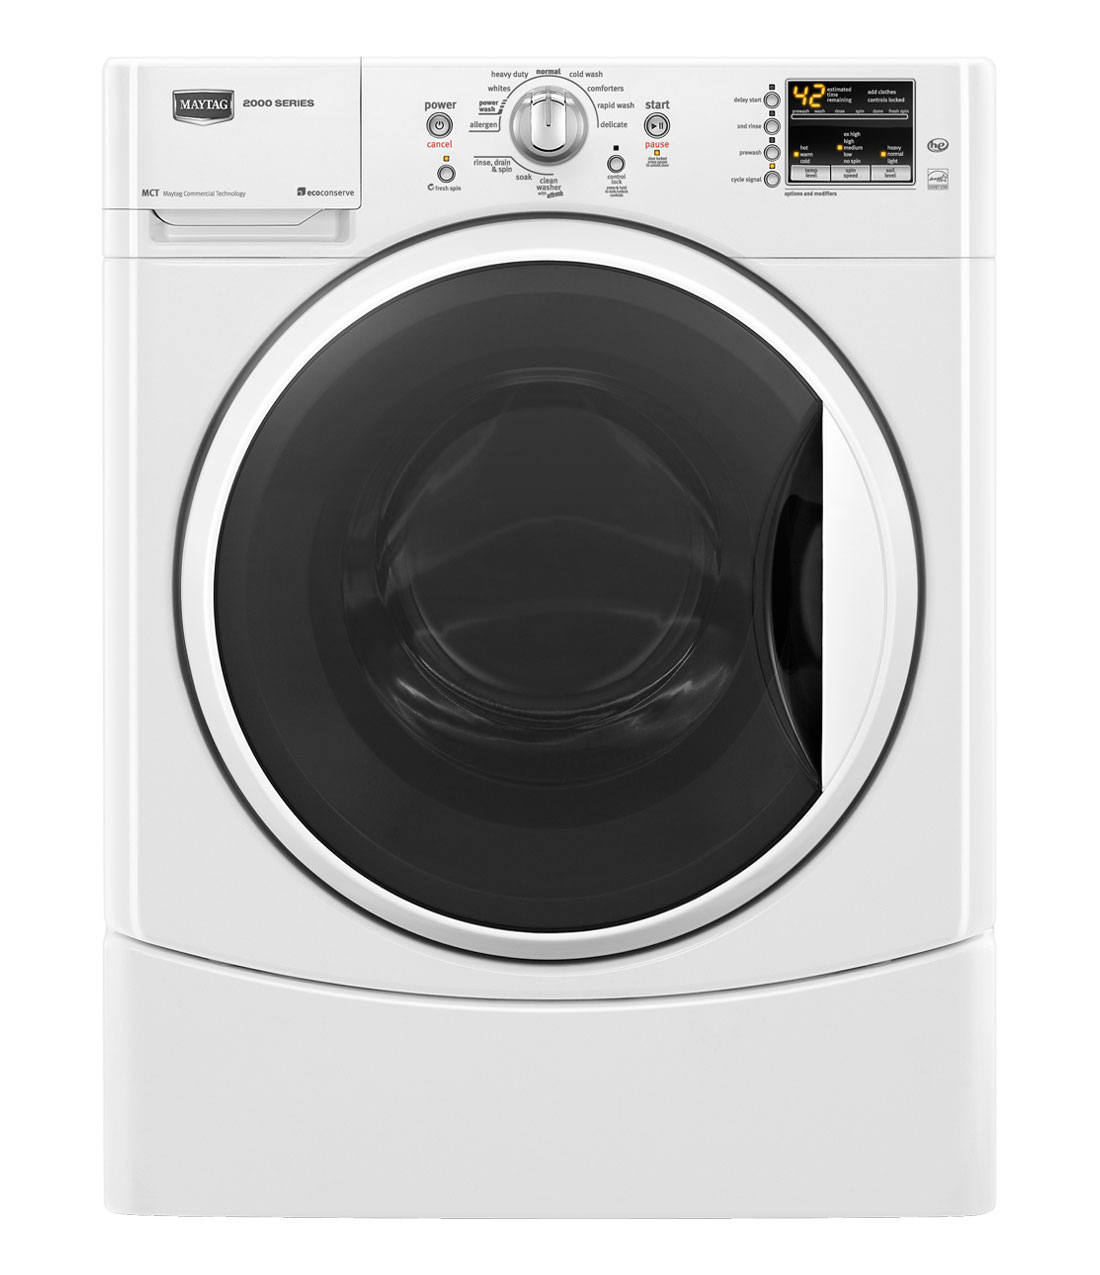 Review of Maytag Performance 3.5 cu ft High-Efficiency Front-Load Washers (White) ENERGY STAR (Model: MHWE201YW)